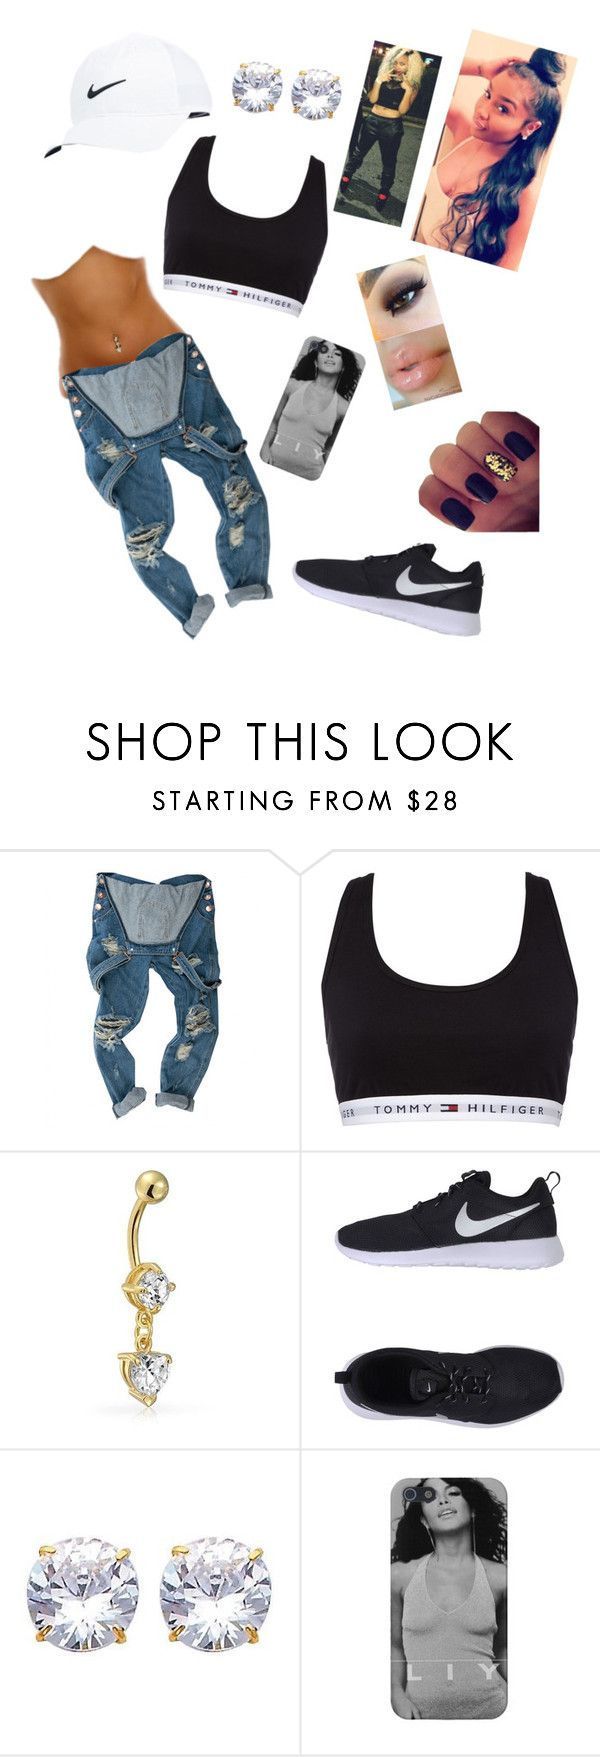 """Tommy Boy"" by paigedenaiya ❤ liked on Polyvore featuring мода, Tommy Hilfiger, Bling Jewelry, NIKE, Nike Golf и SeductiveRebel"